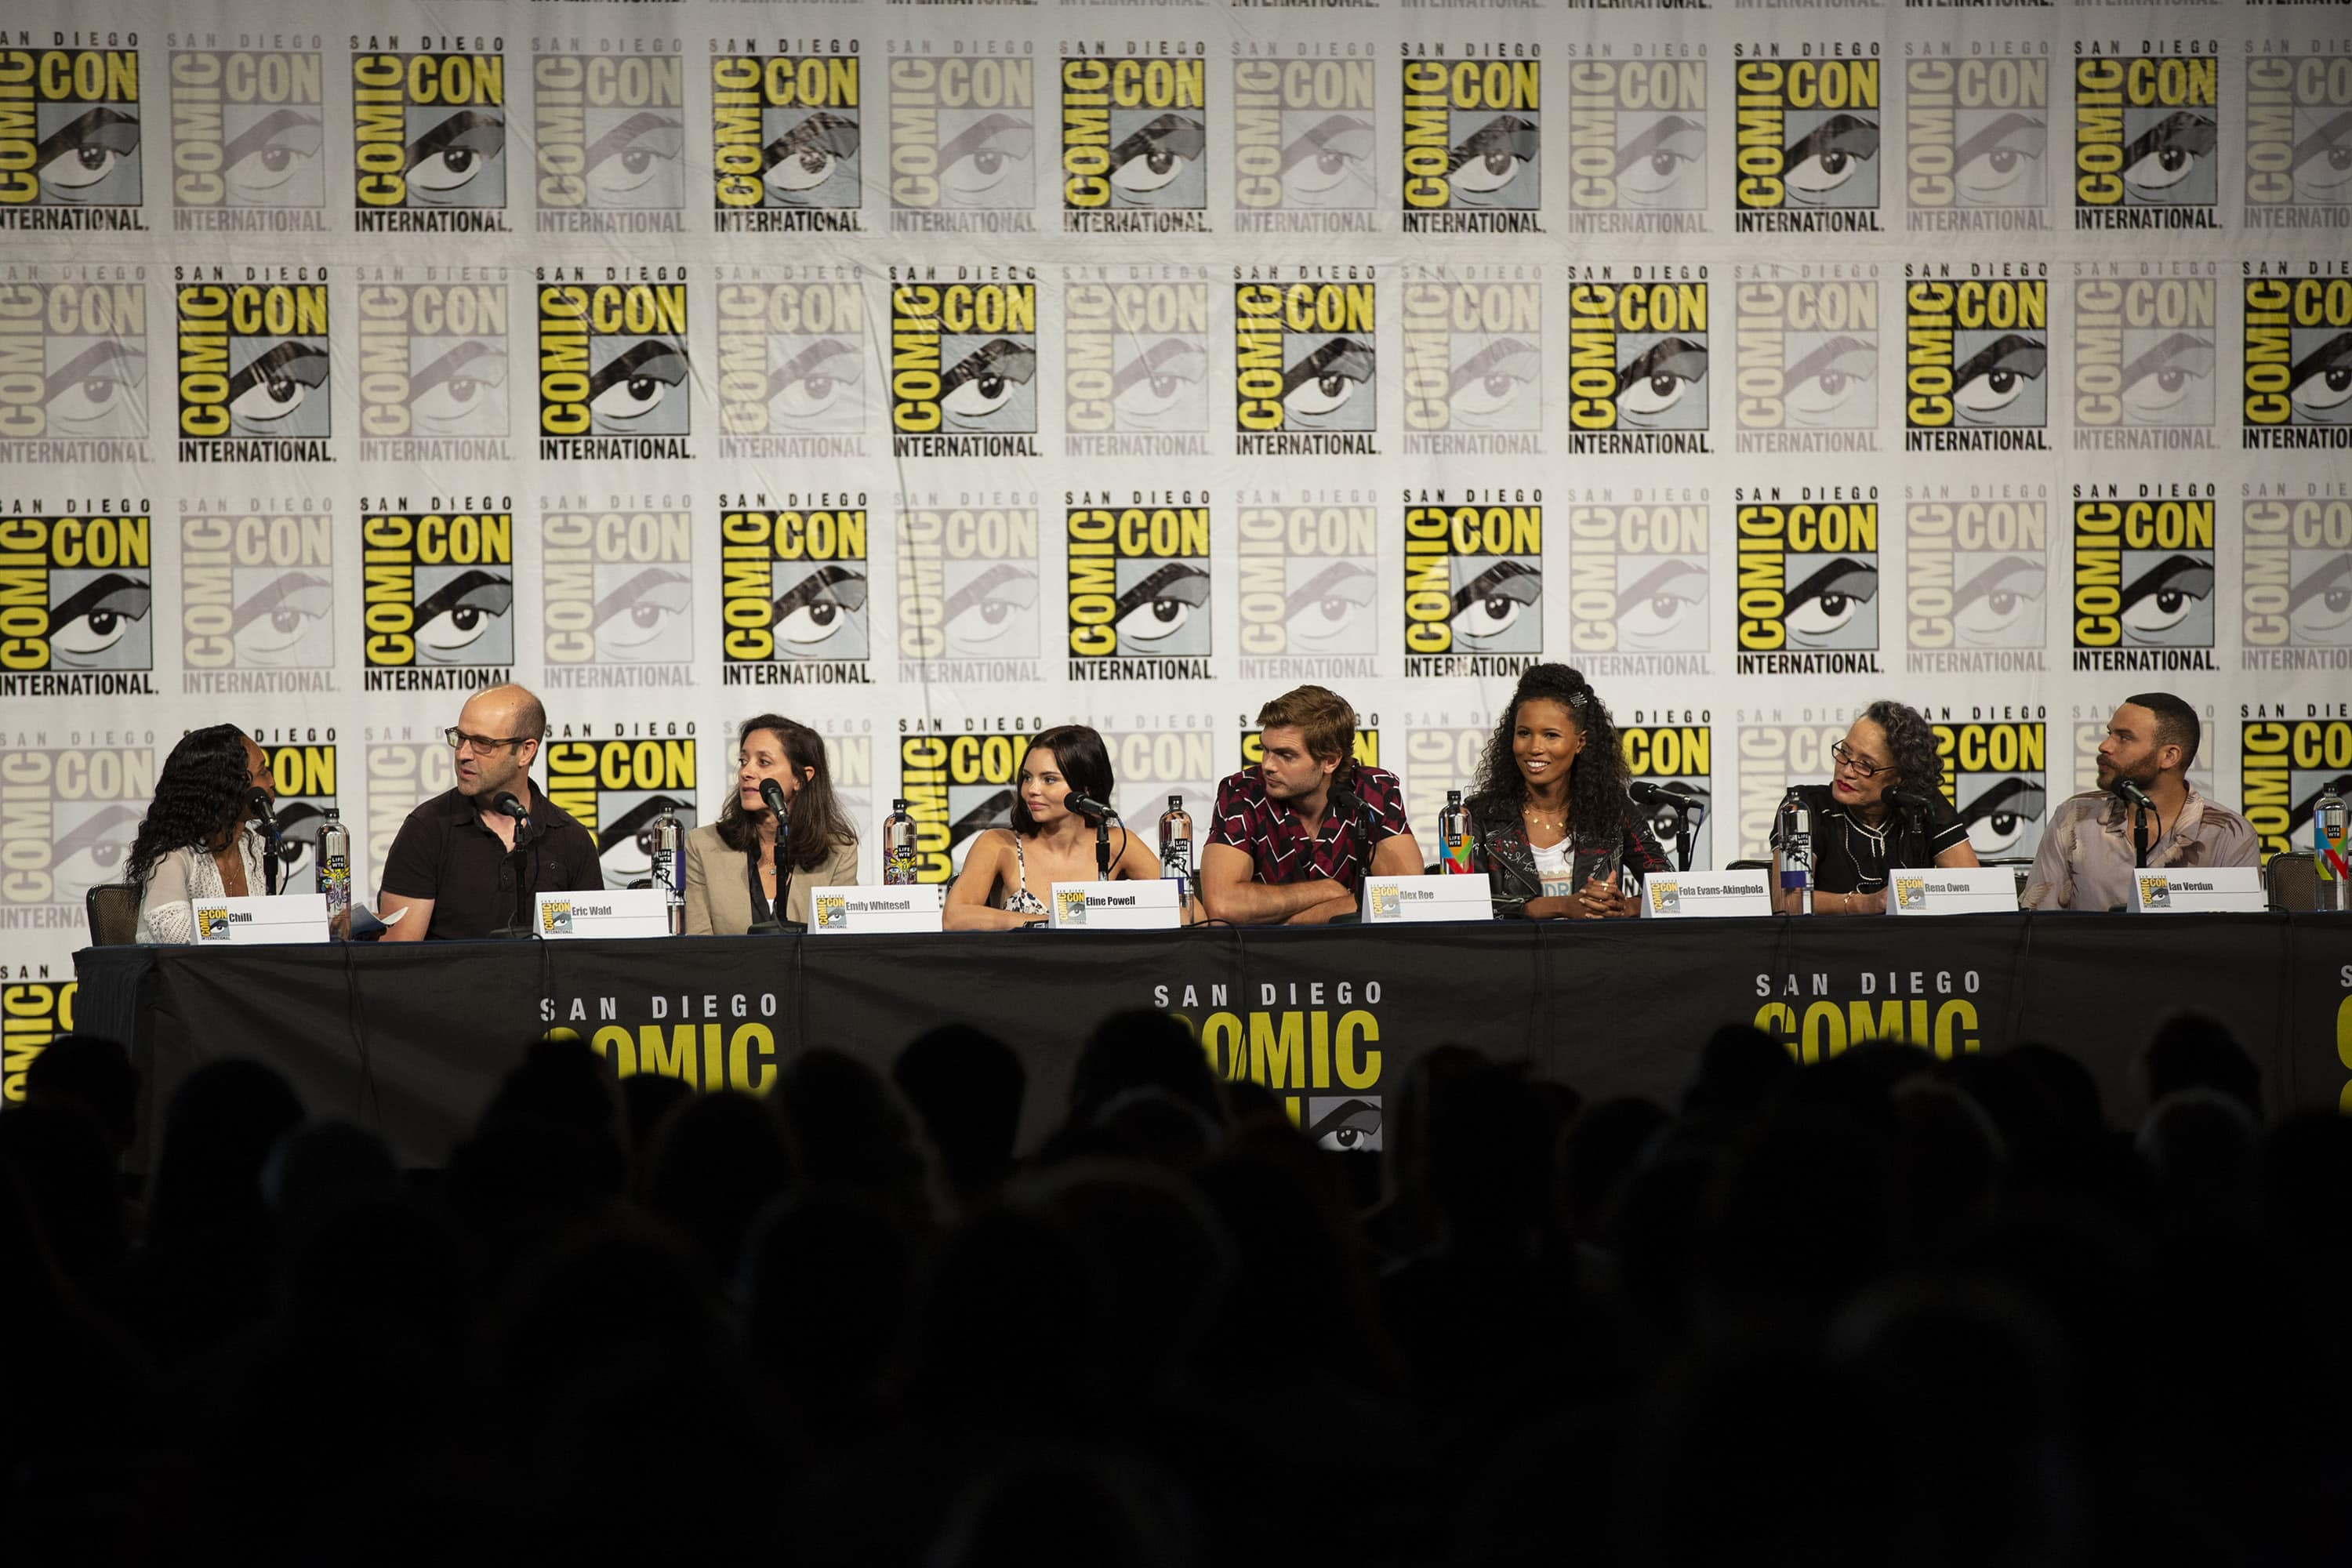 The cast and executive producers of 'Siren' at the San Diego comic con